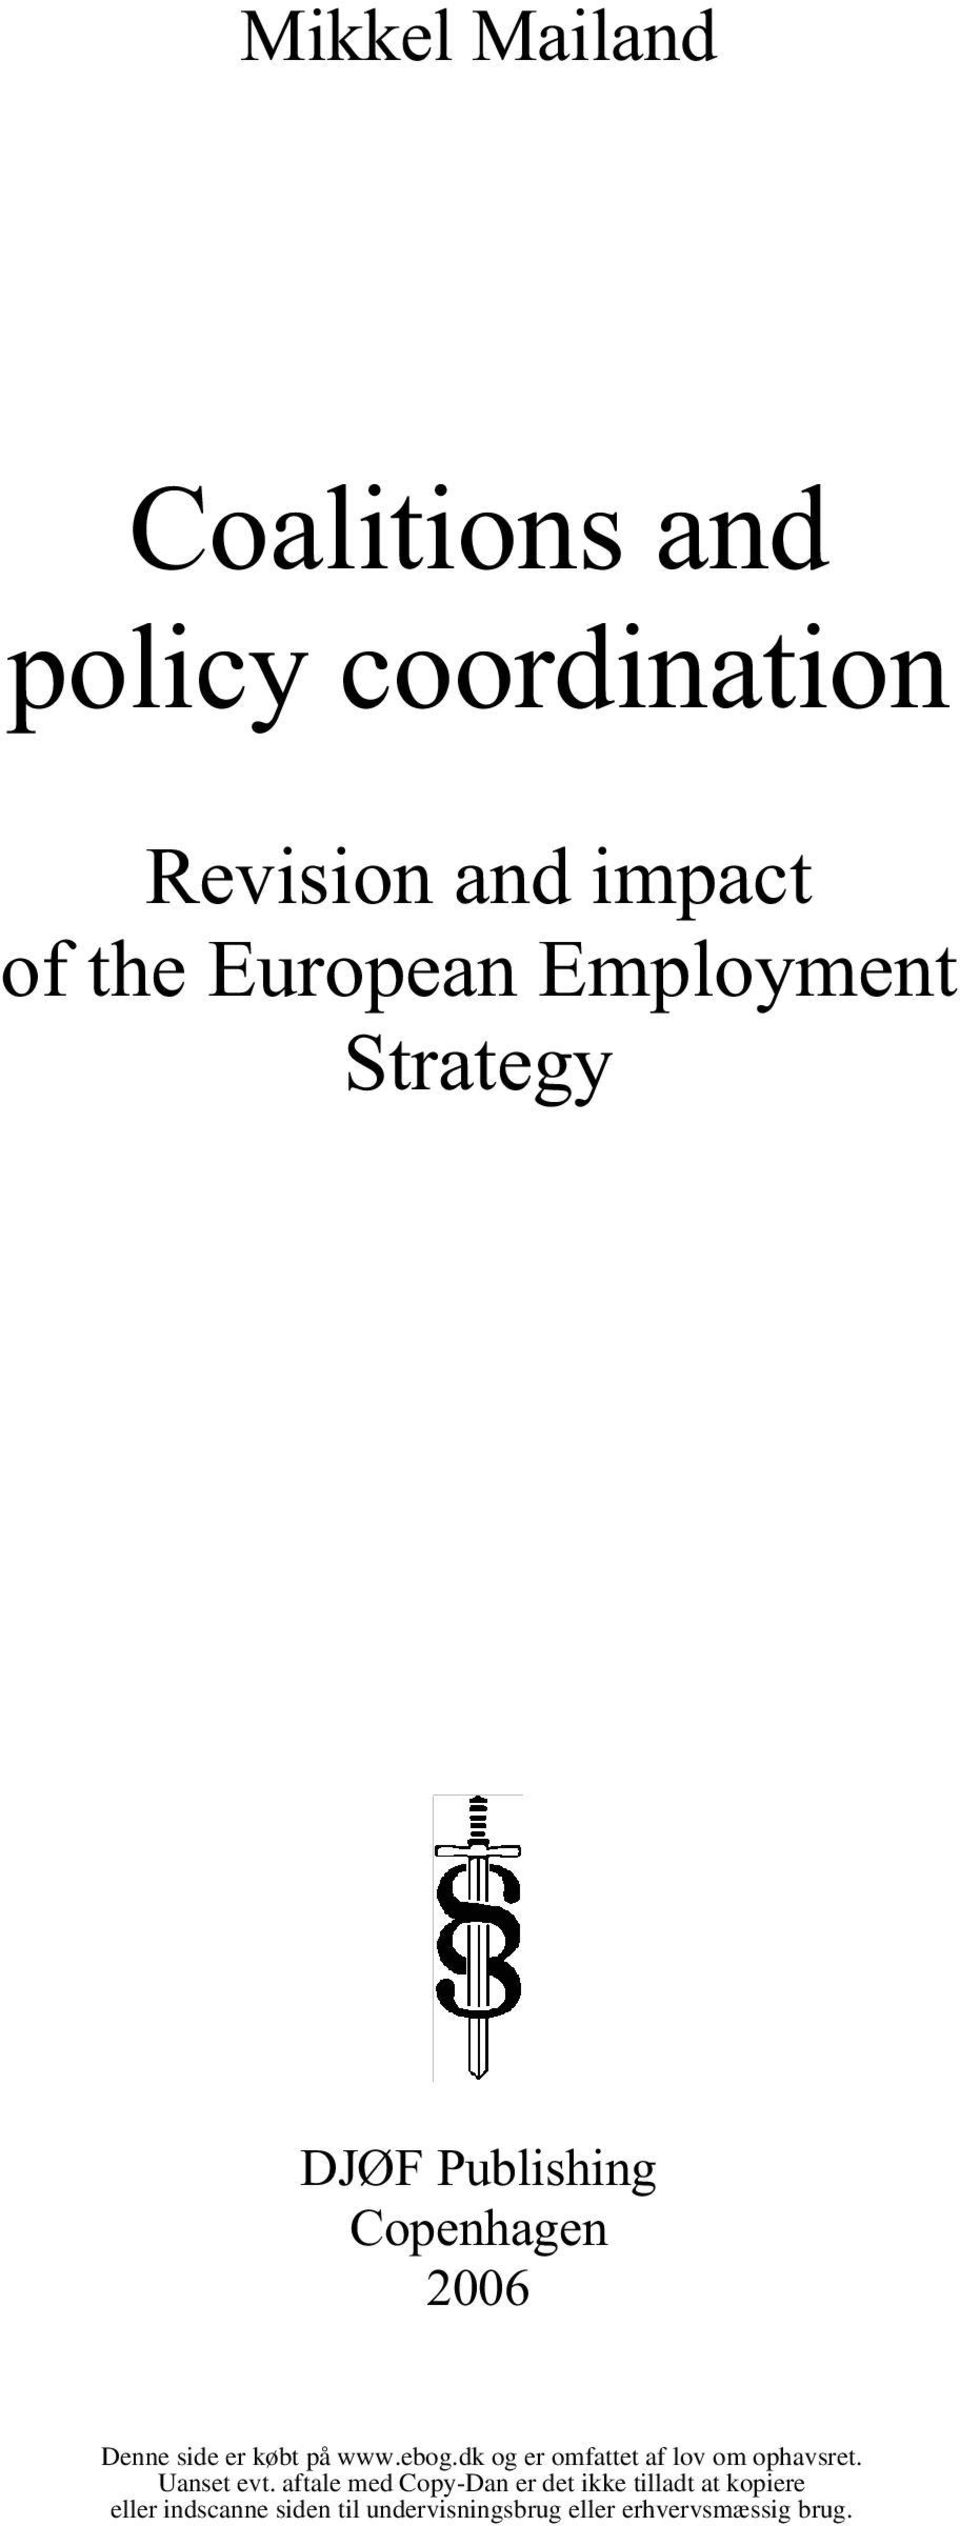 impact of the European Employment